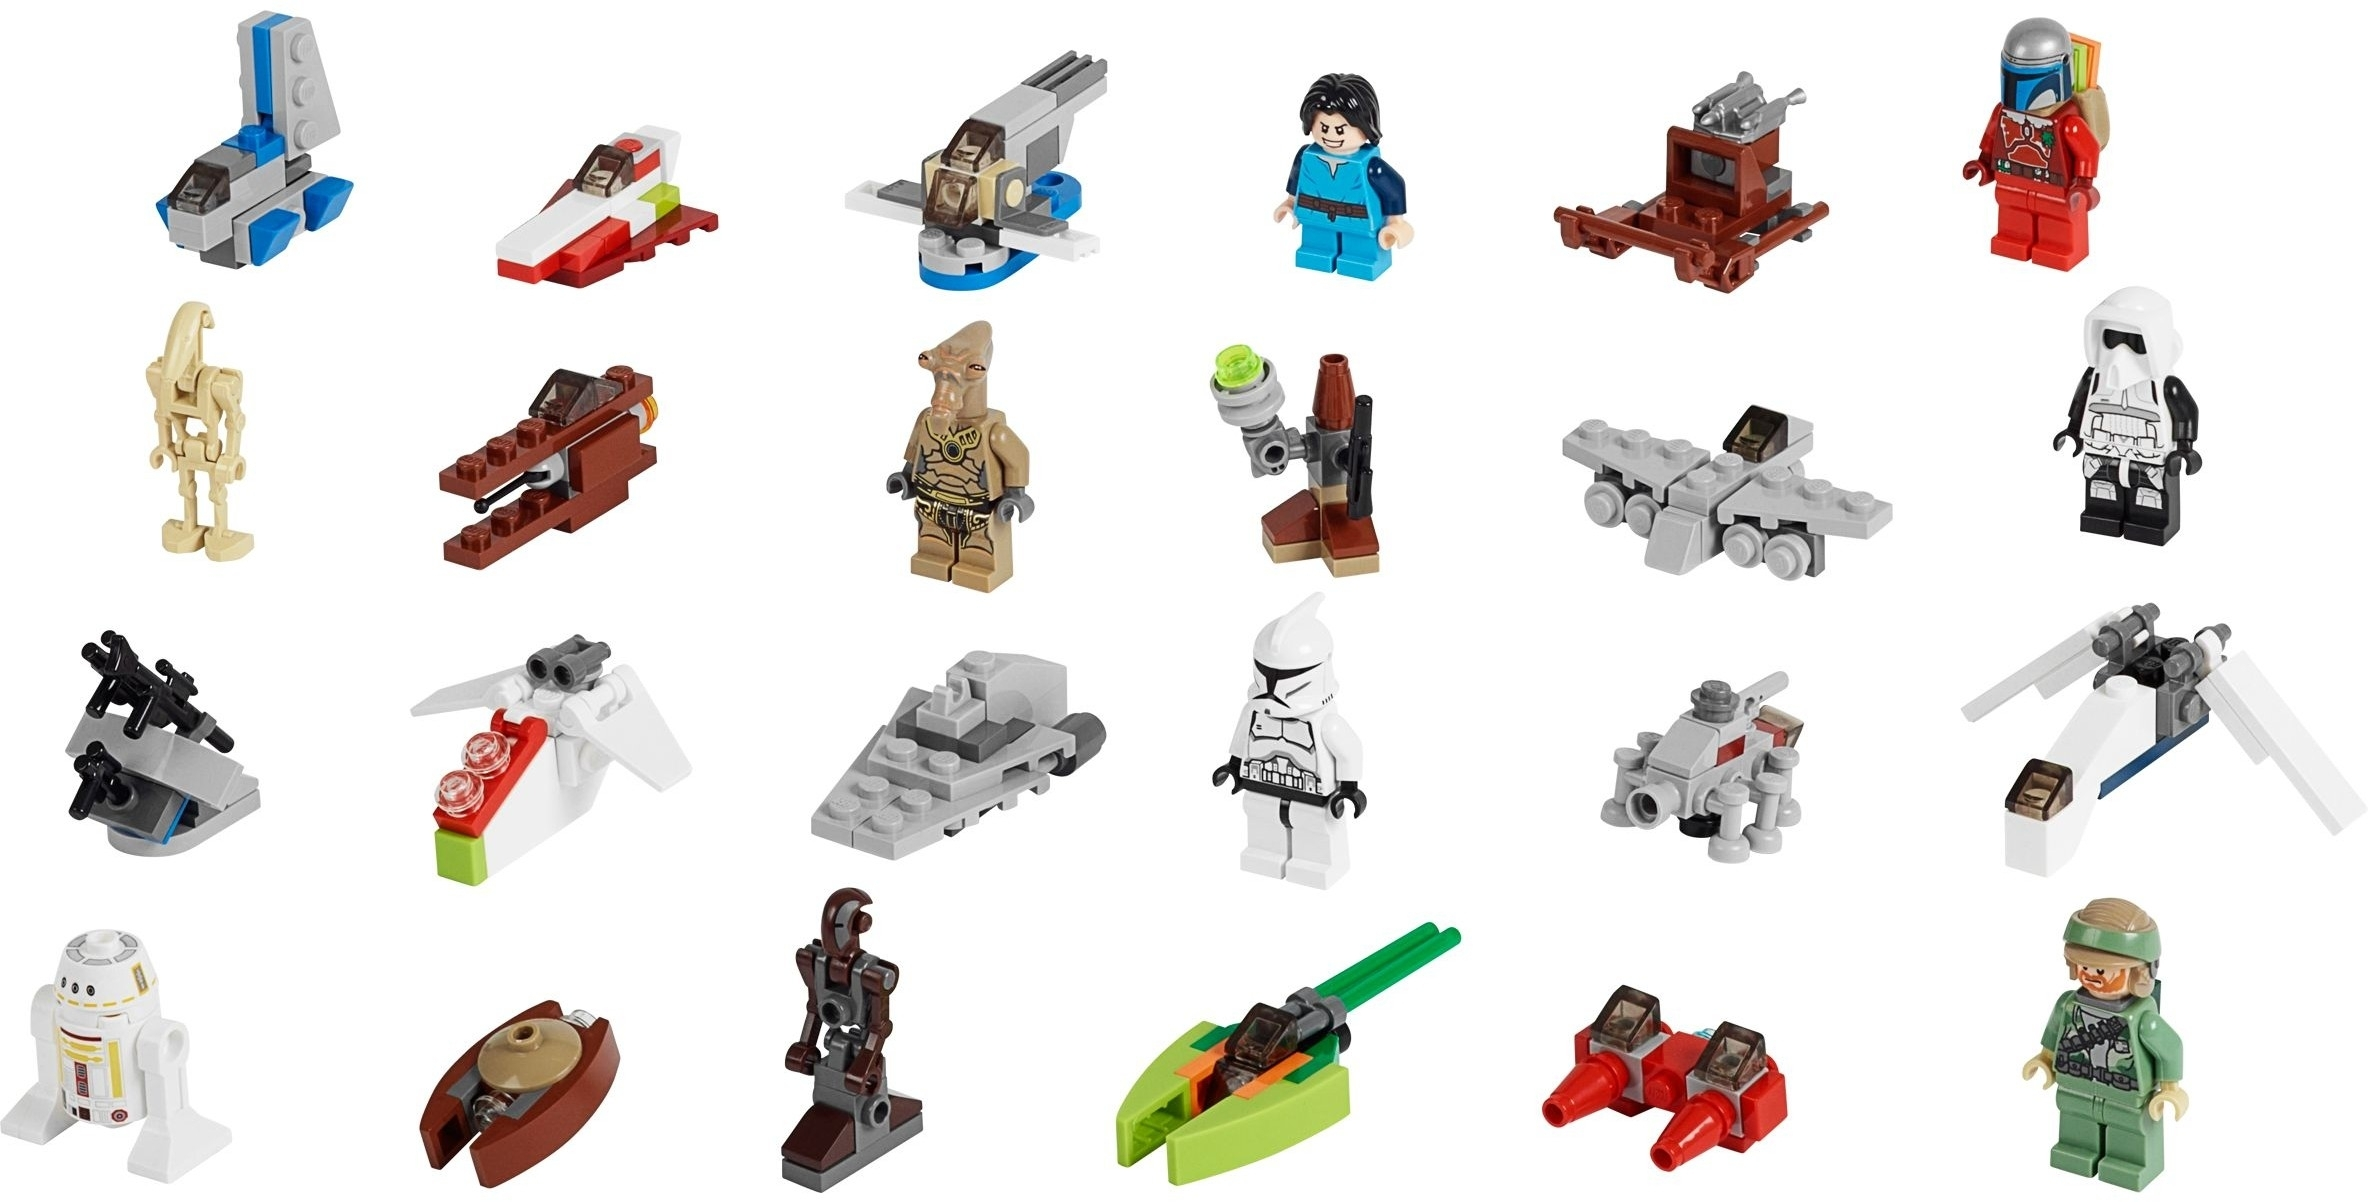 Lego Star Wars Instructions, Childrens Toys inside Lego Star Wars 2018 Advent Calendar Instructions